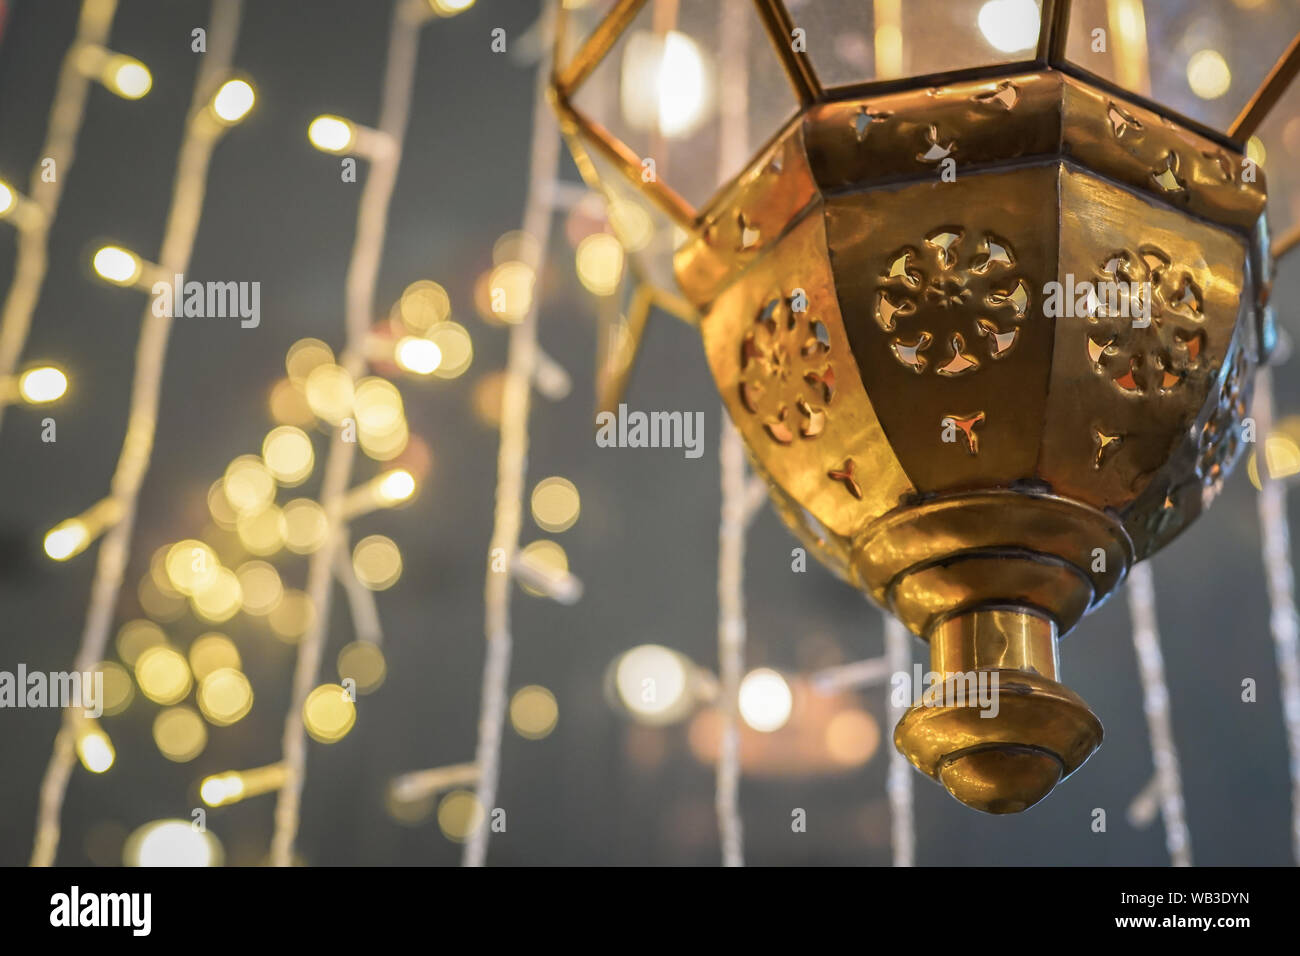 Hanging Arabic lantern with lights background. Stock Photo